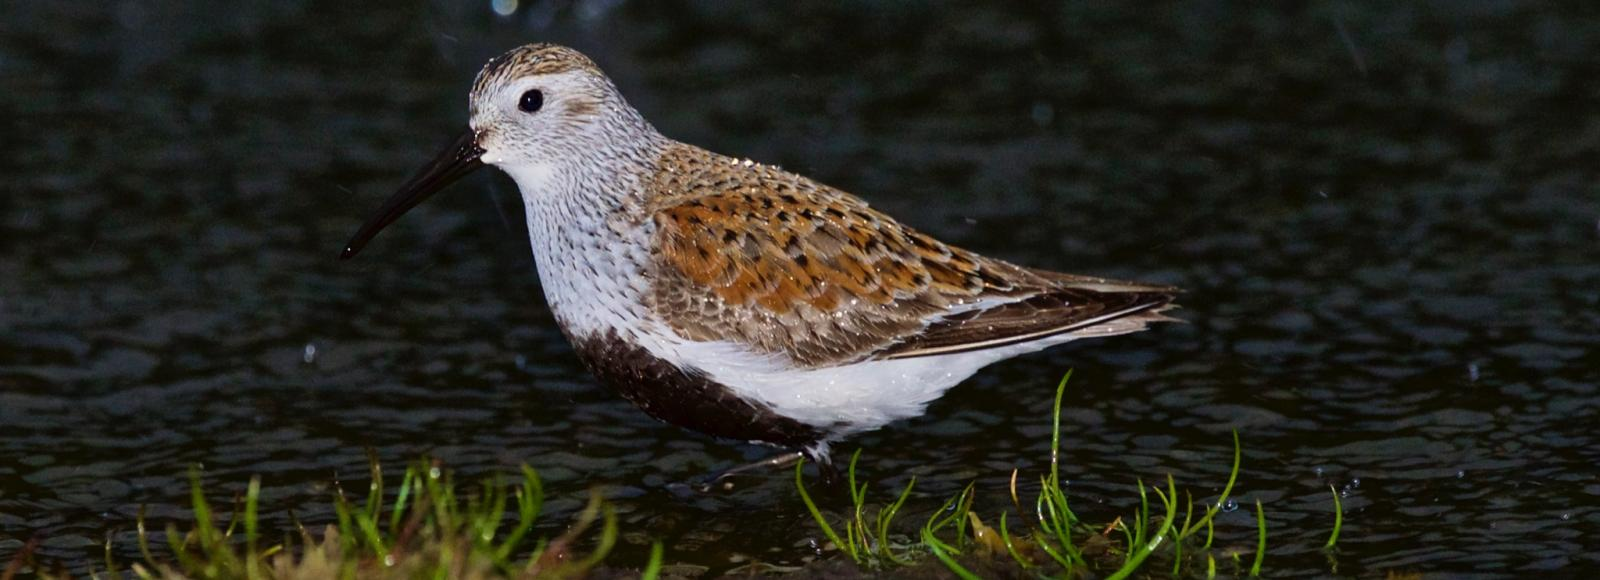 Dunlin, a small shorebird with rusty brown upper parts, pale under parts and a black belly, stands in water